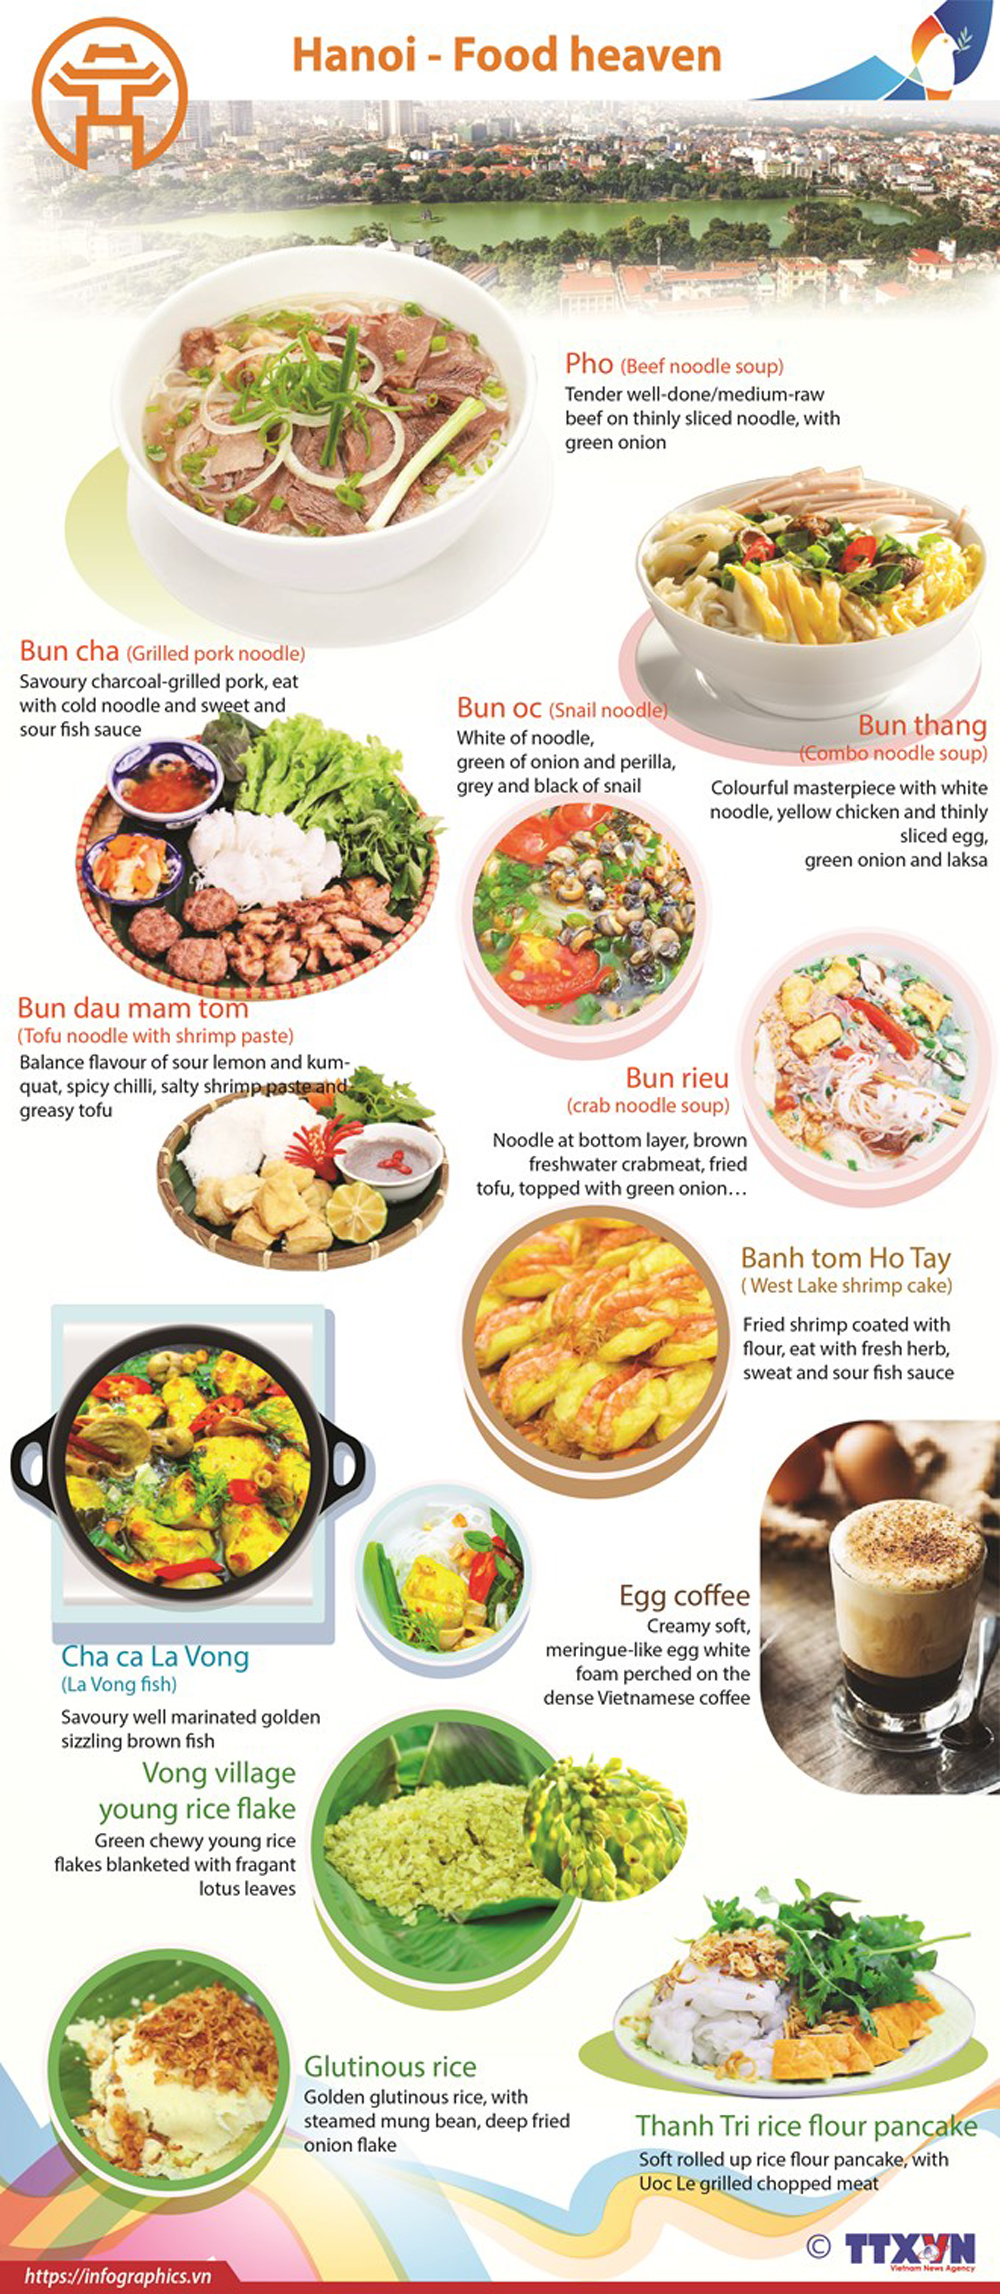 Hanoi, Food heaven, special dishes, culinary culture, diverse cuisine, local specialties